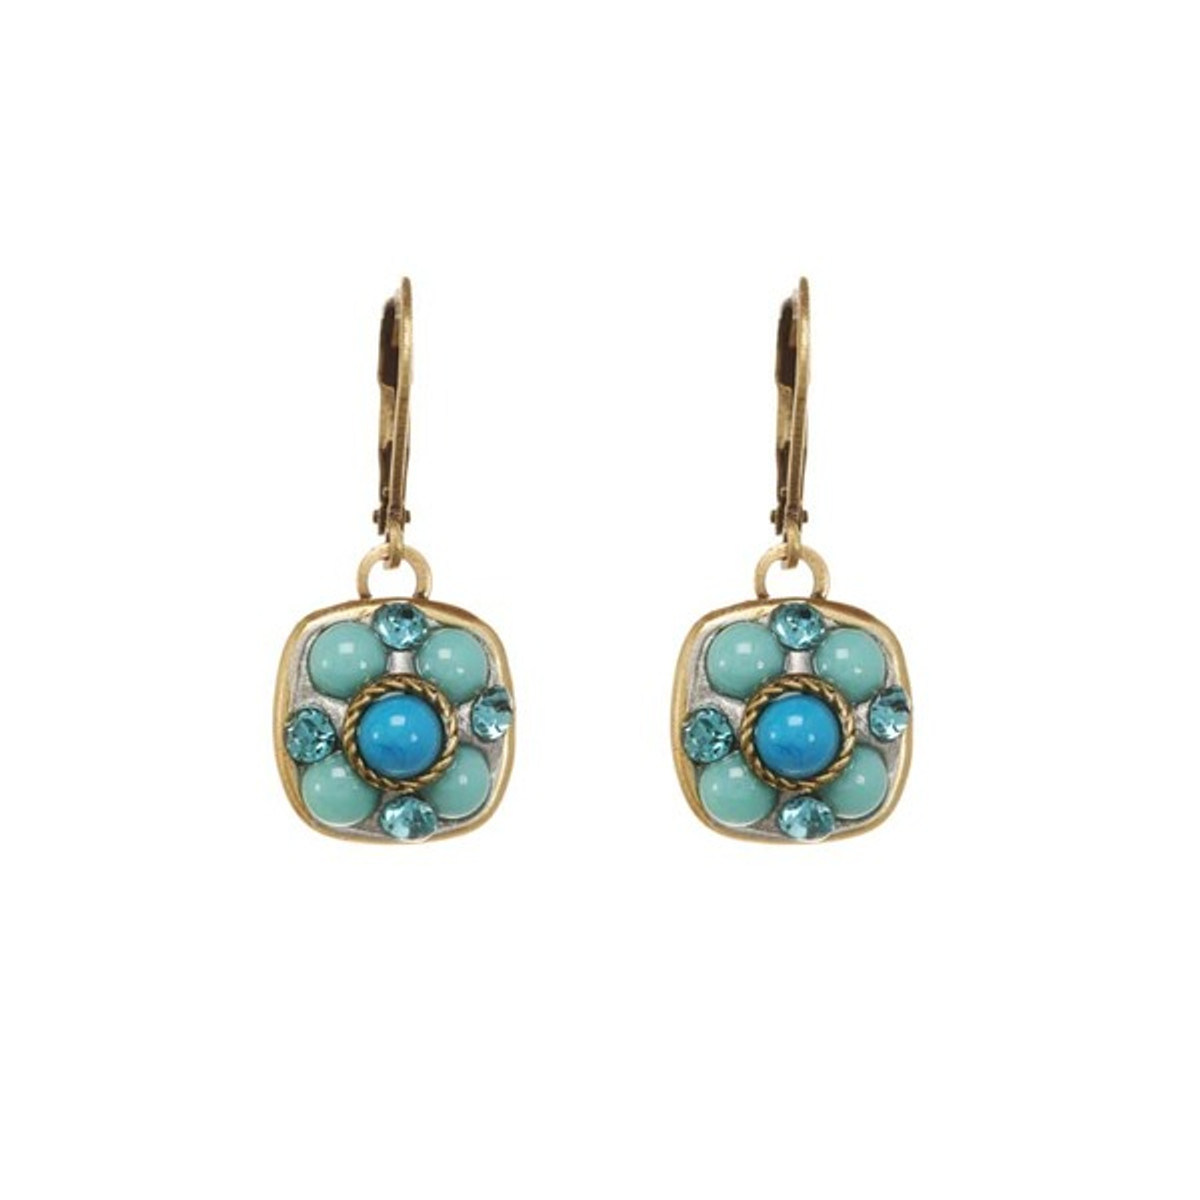 Nile earrings by Michal Golan Jewelry